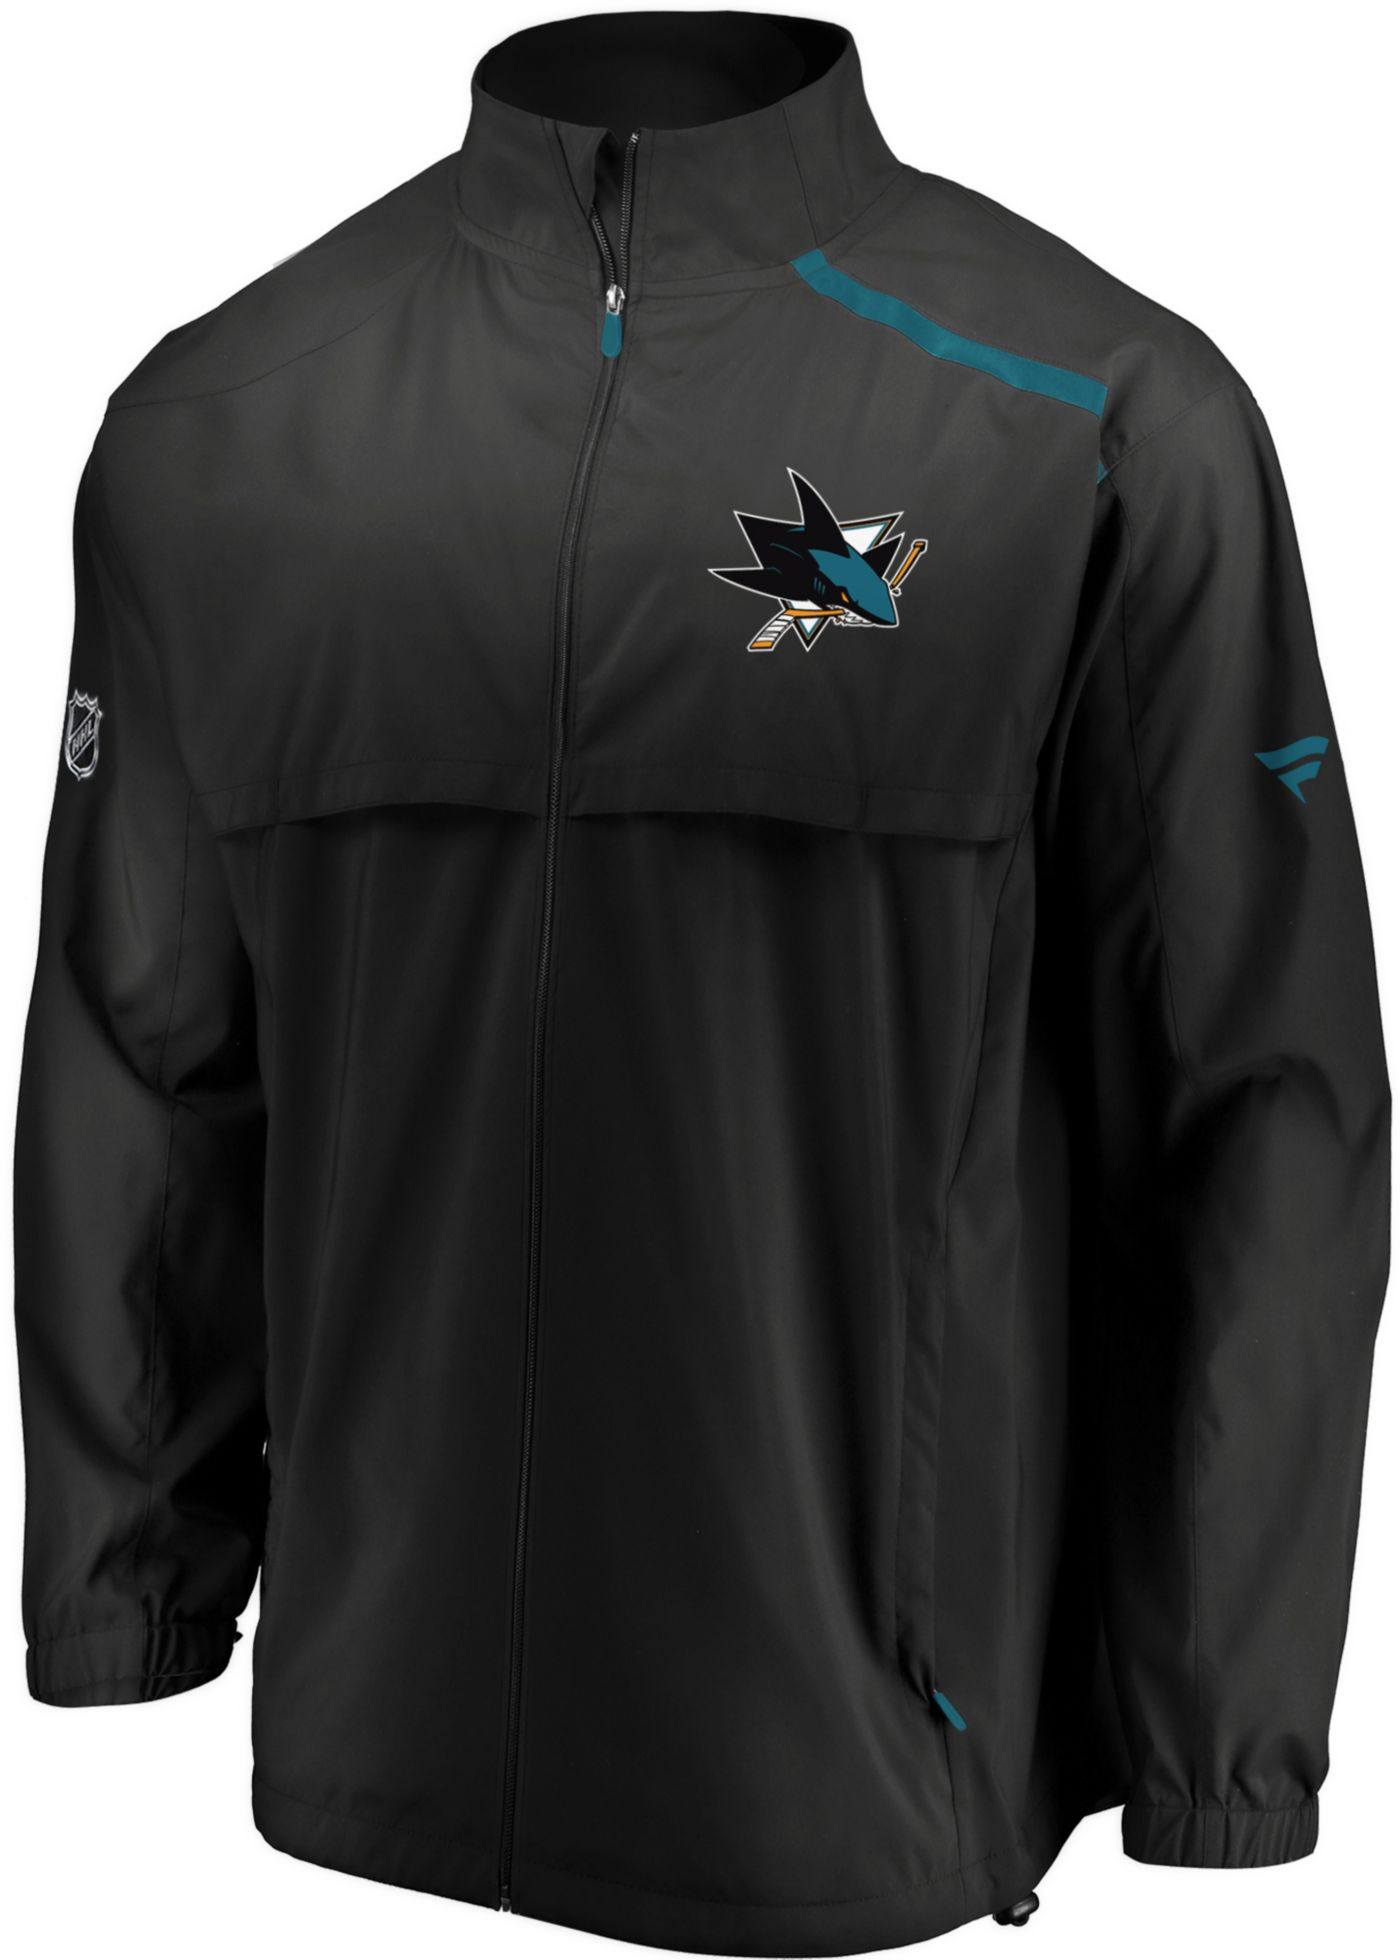 NHL Men's San Jose Sharks Authentic Pro Rinkside Black Full-Zip Jacket